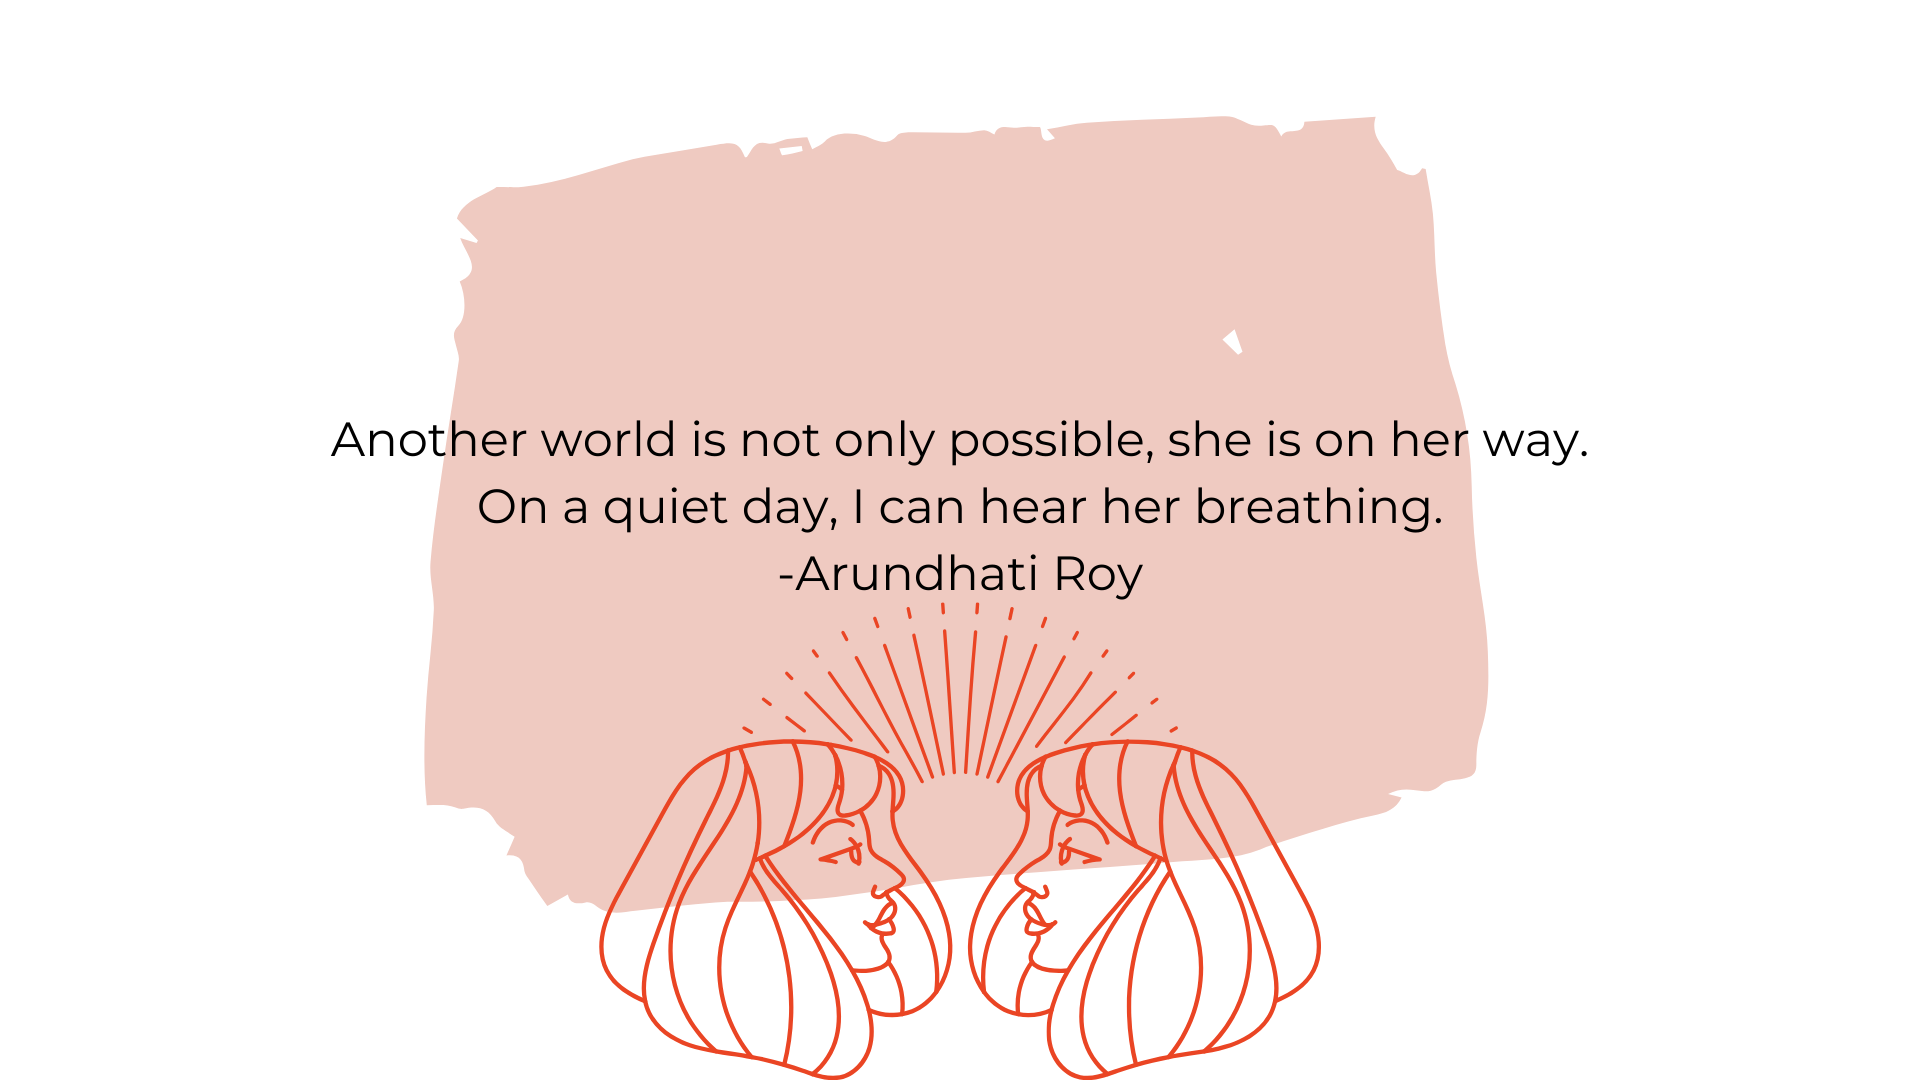 Another world is not only possible, she is on her way. On a quiet day, I can hear her breathing. -Arundhati RoyAnother world is not only possible, she is on her way. On a quiet day, I can hear her breathing. -Arundhati Roy